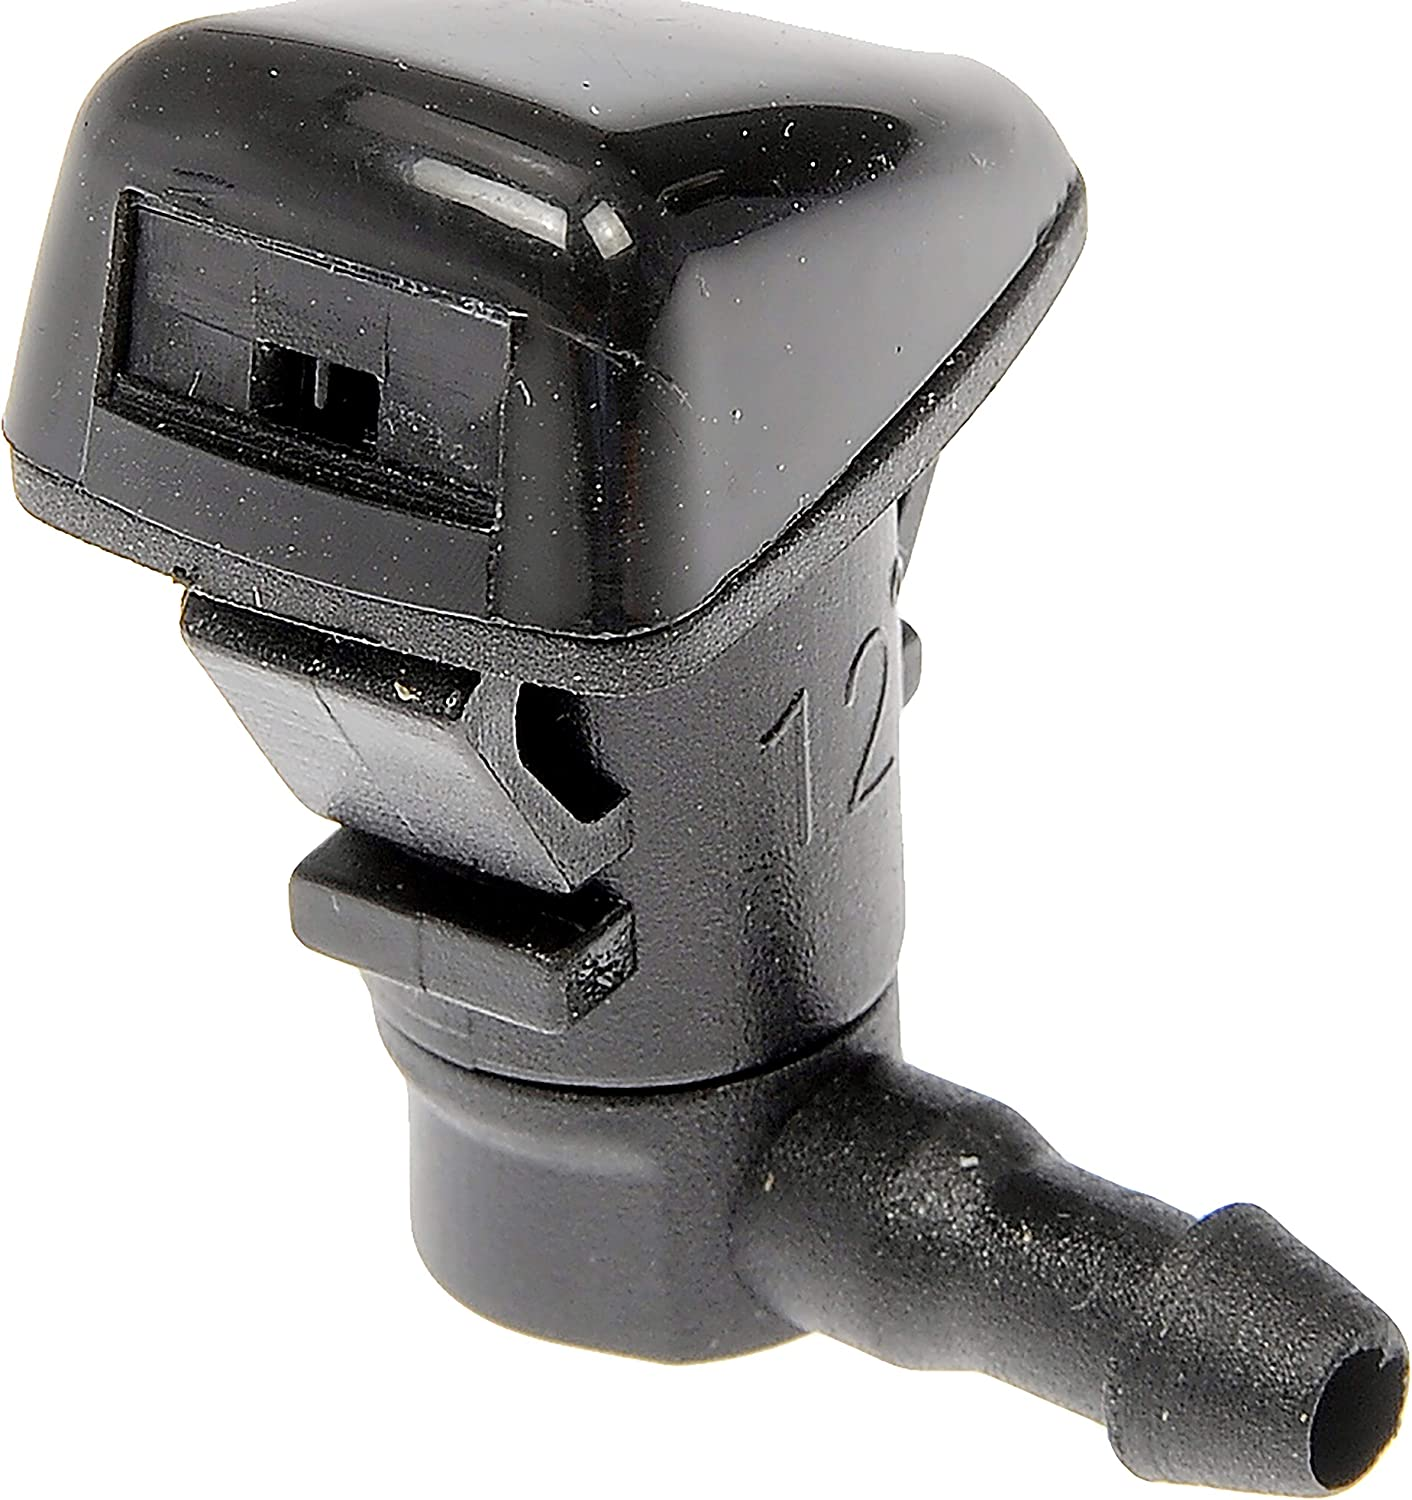 Dorman 58147 Windshield Washer Nozzle for Select Chrysler/Dodge Models